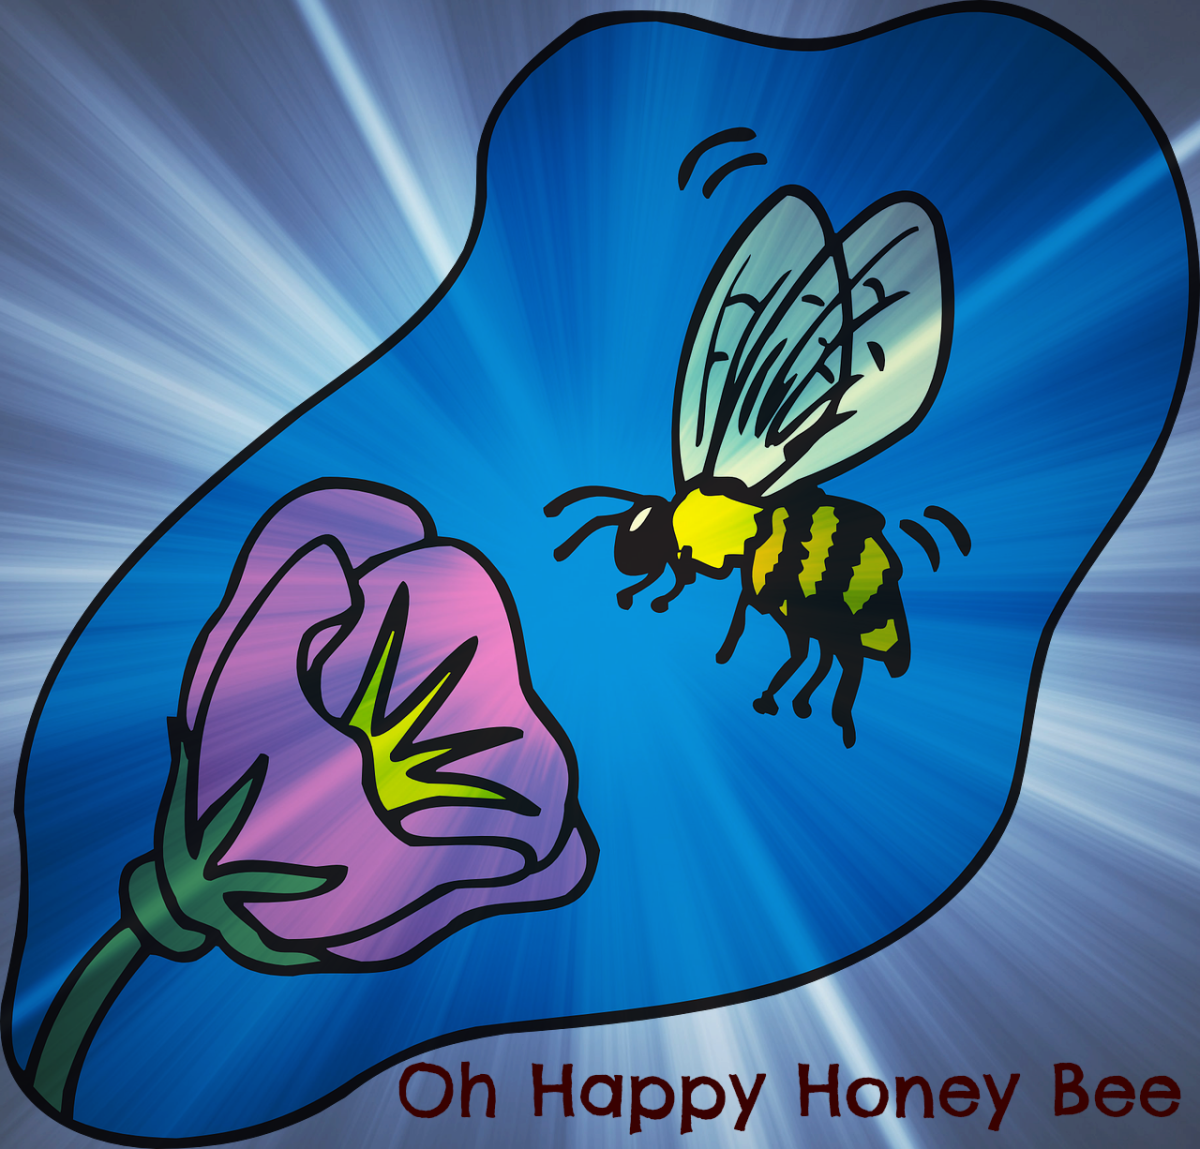 A bee approaches a flower to guzzle nectar.